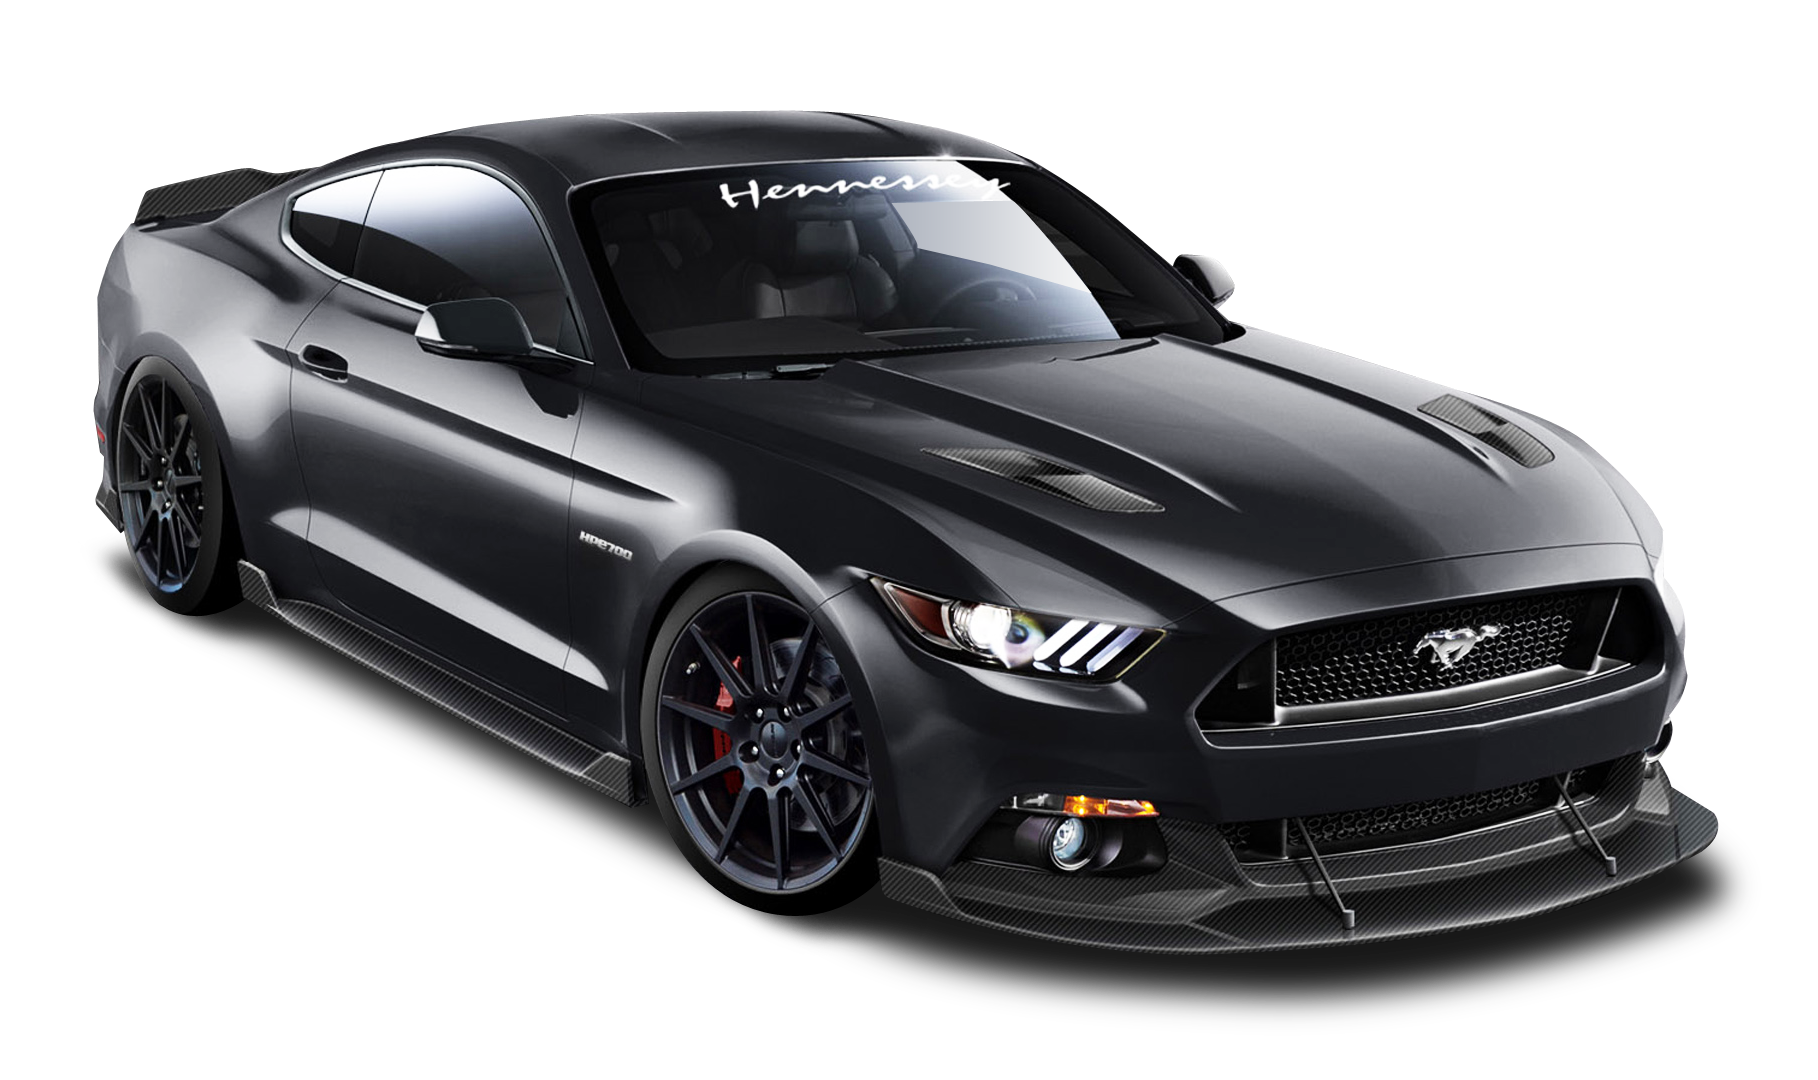 Ford Mustang Hennessey Black Car Png Image Purepng Free